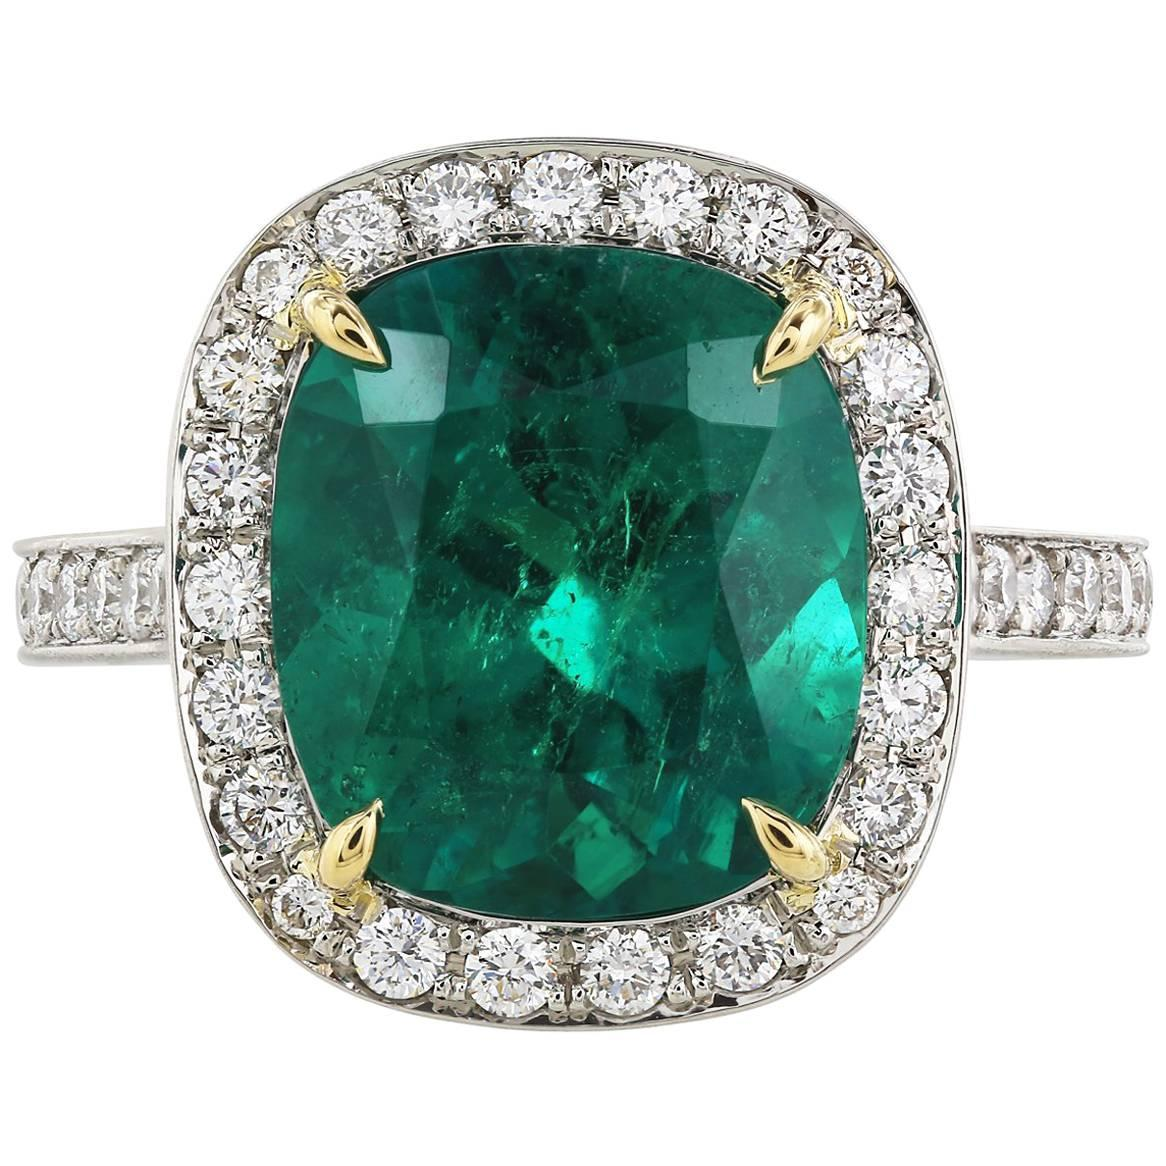 C Dunaigre Certified 427 Carat Colombian Emerald Ring For Sale At 1stdibs